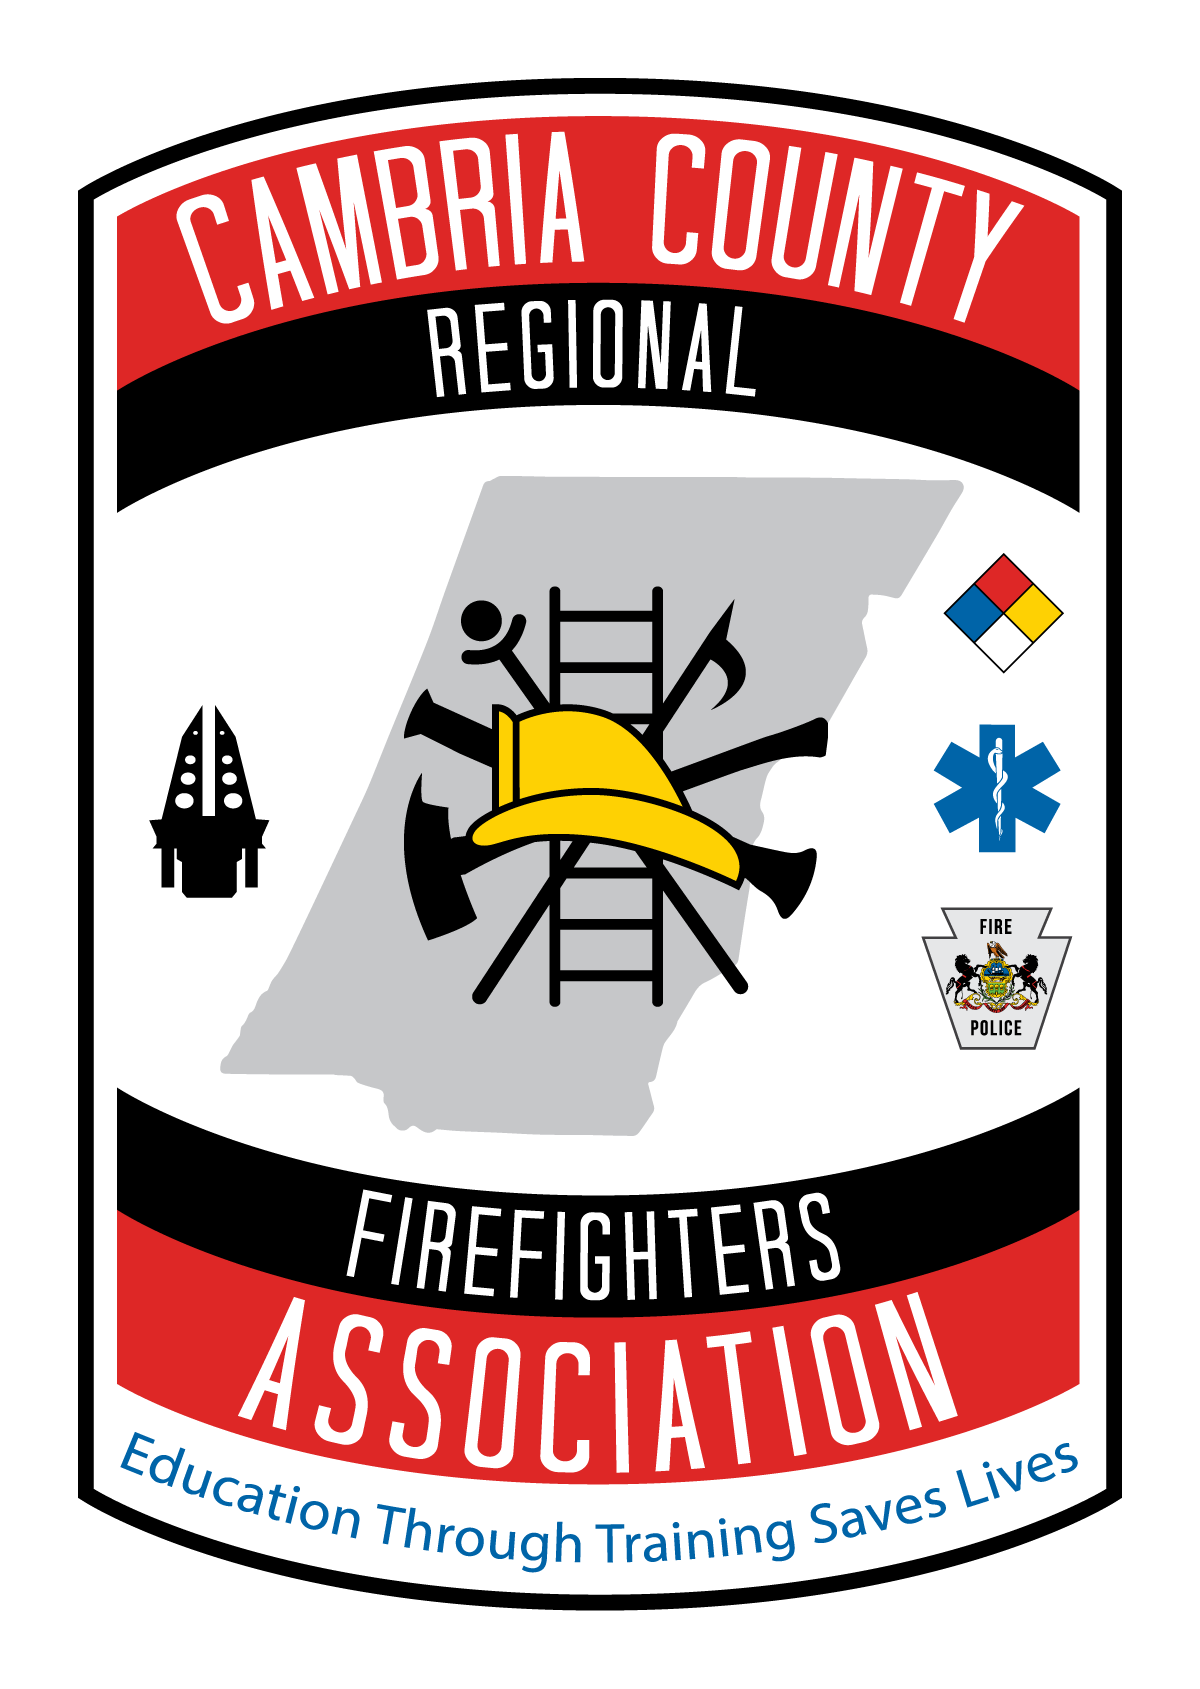 Cambria County Regional Firefighters Association